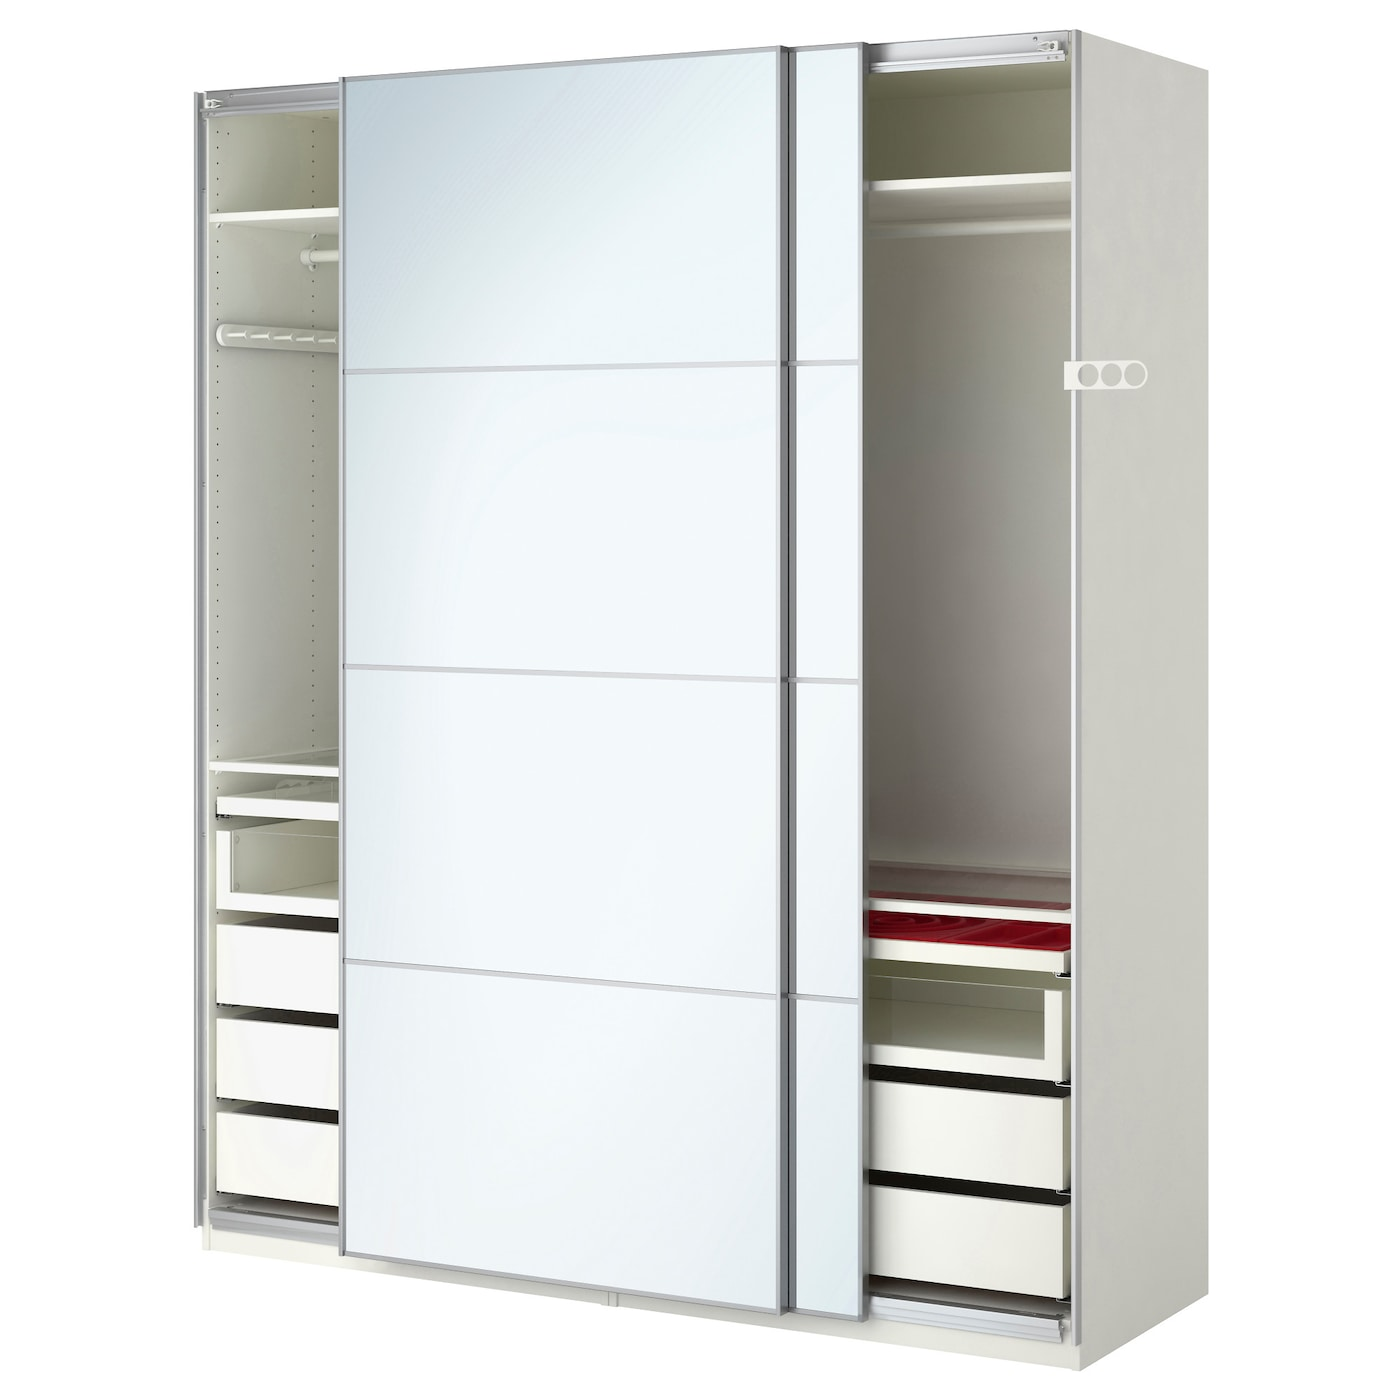 Pax wardrobe white auli mirror glass 200x66x236 cm ikea - Ikea armoire with mirror ...